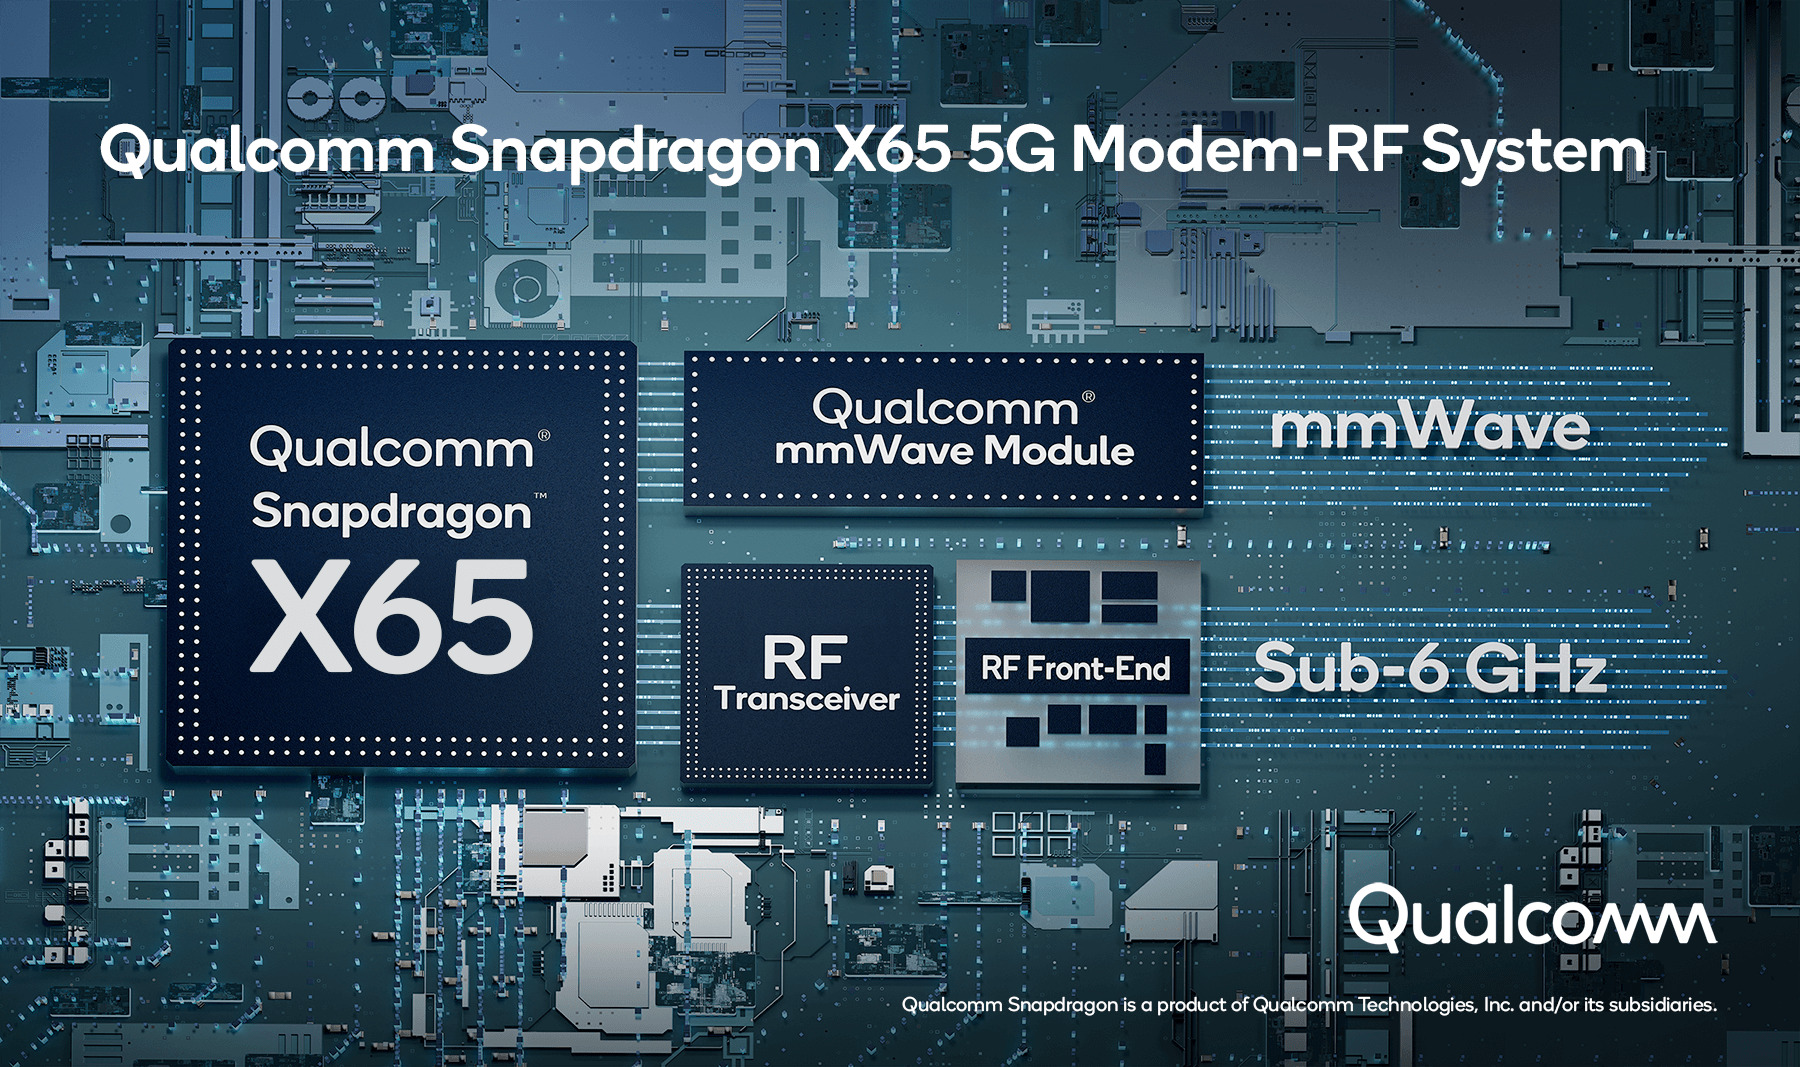 Qualcomm's 10 Gigabit 5G Modem-RF System for Mobile Broadband and Industrial IoT